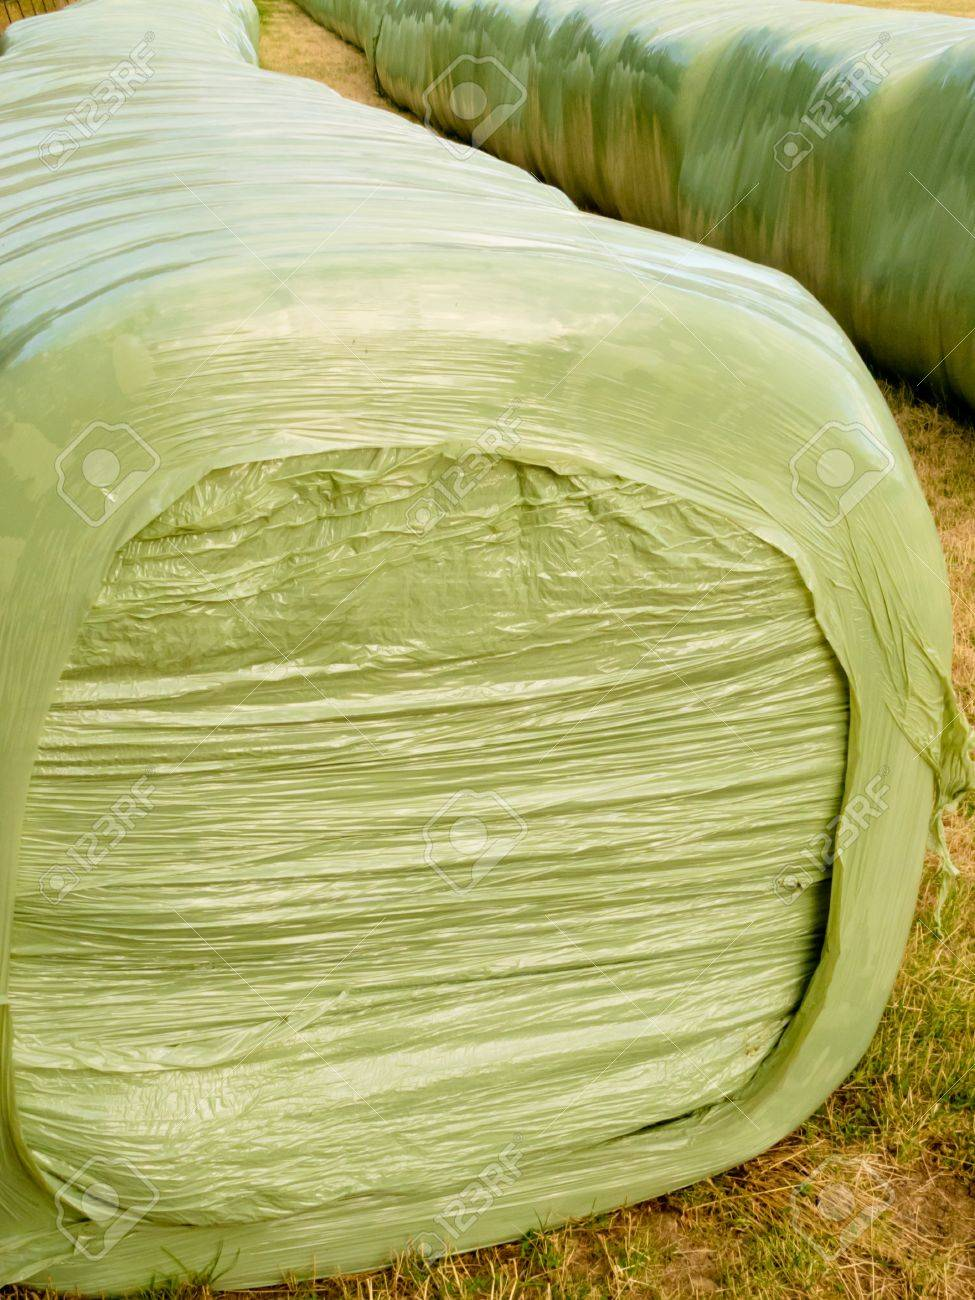 Rows of stacked silage or haylage bales, hay sealed in plastic